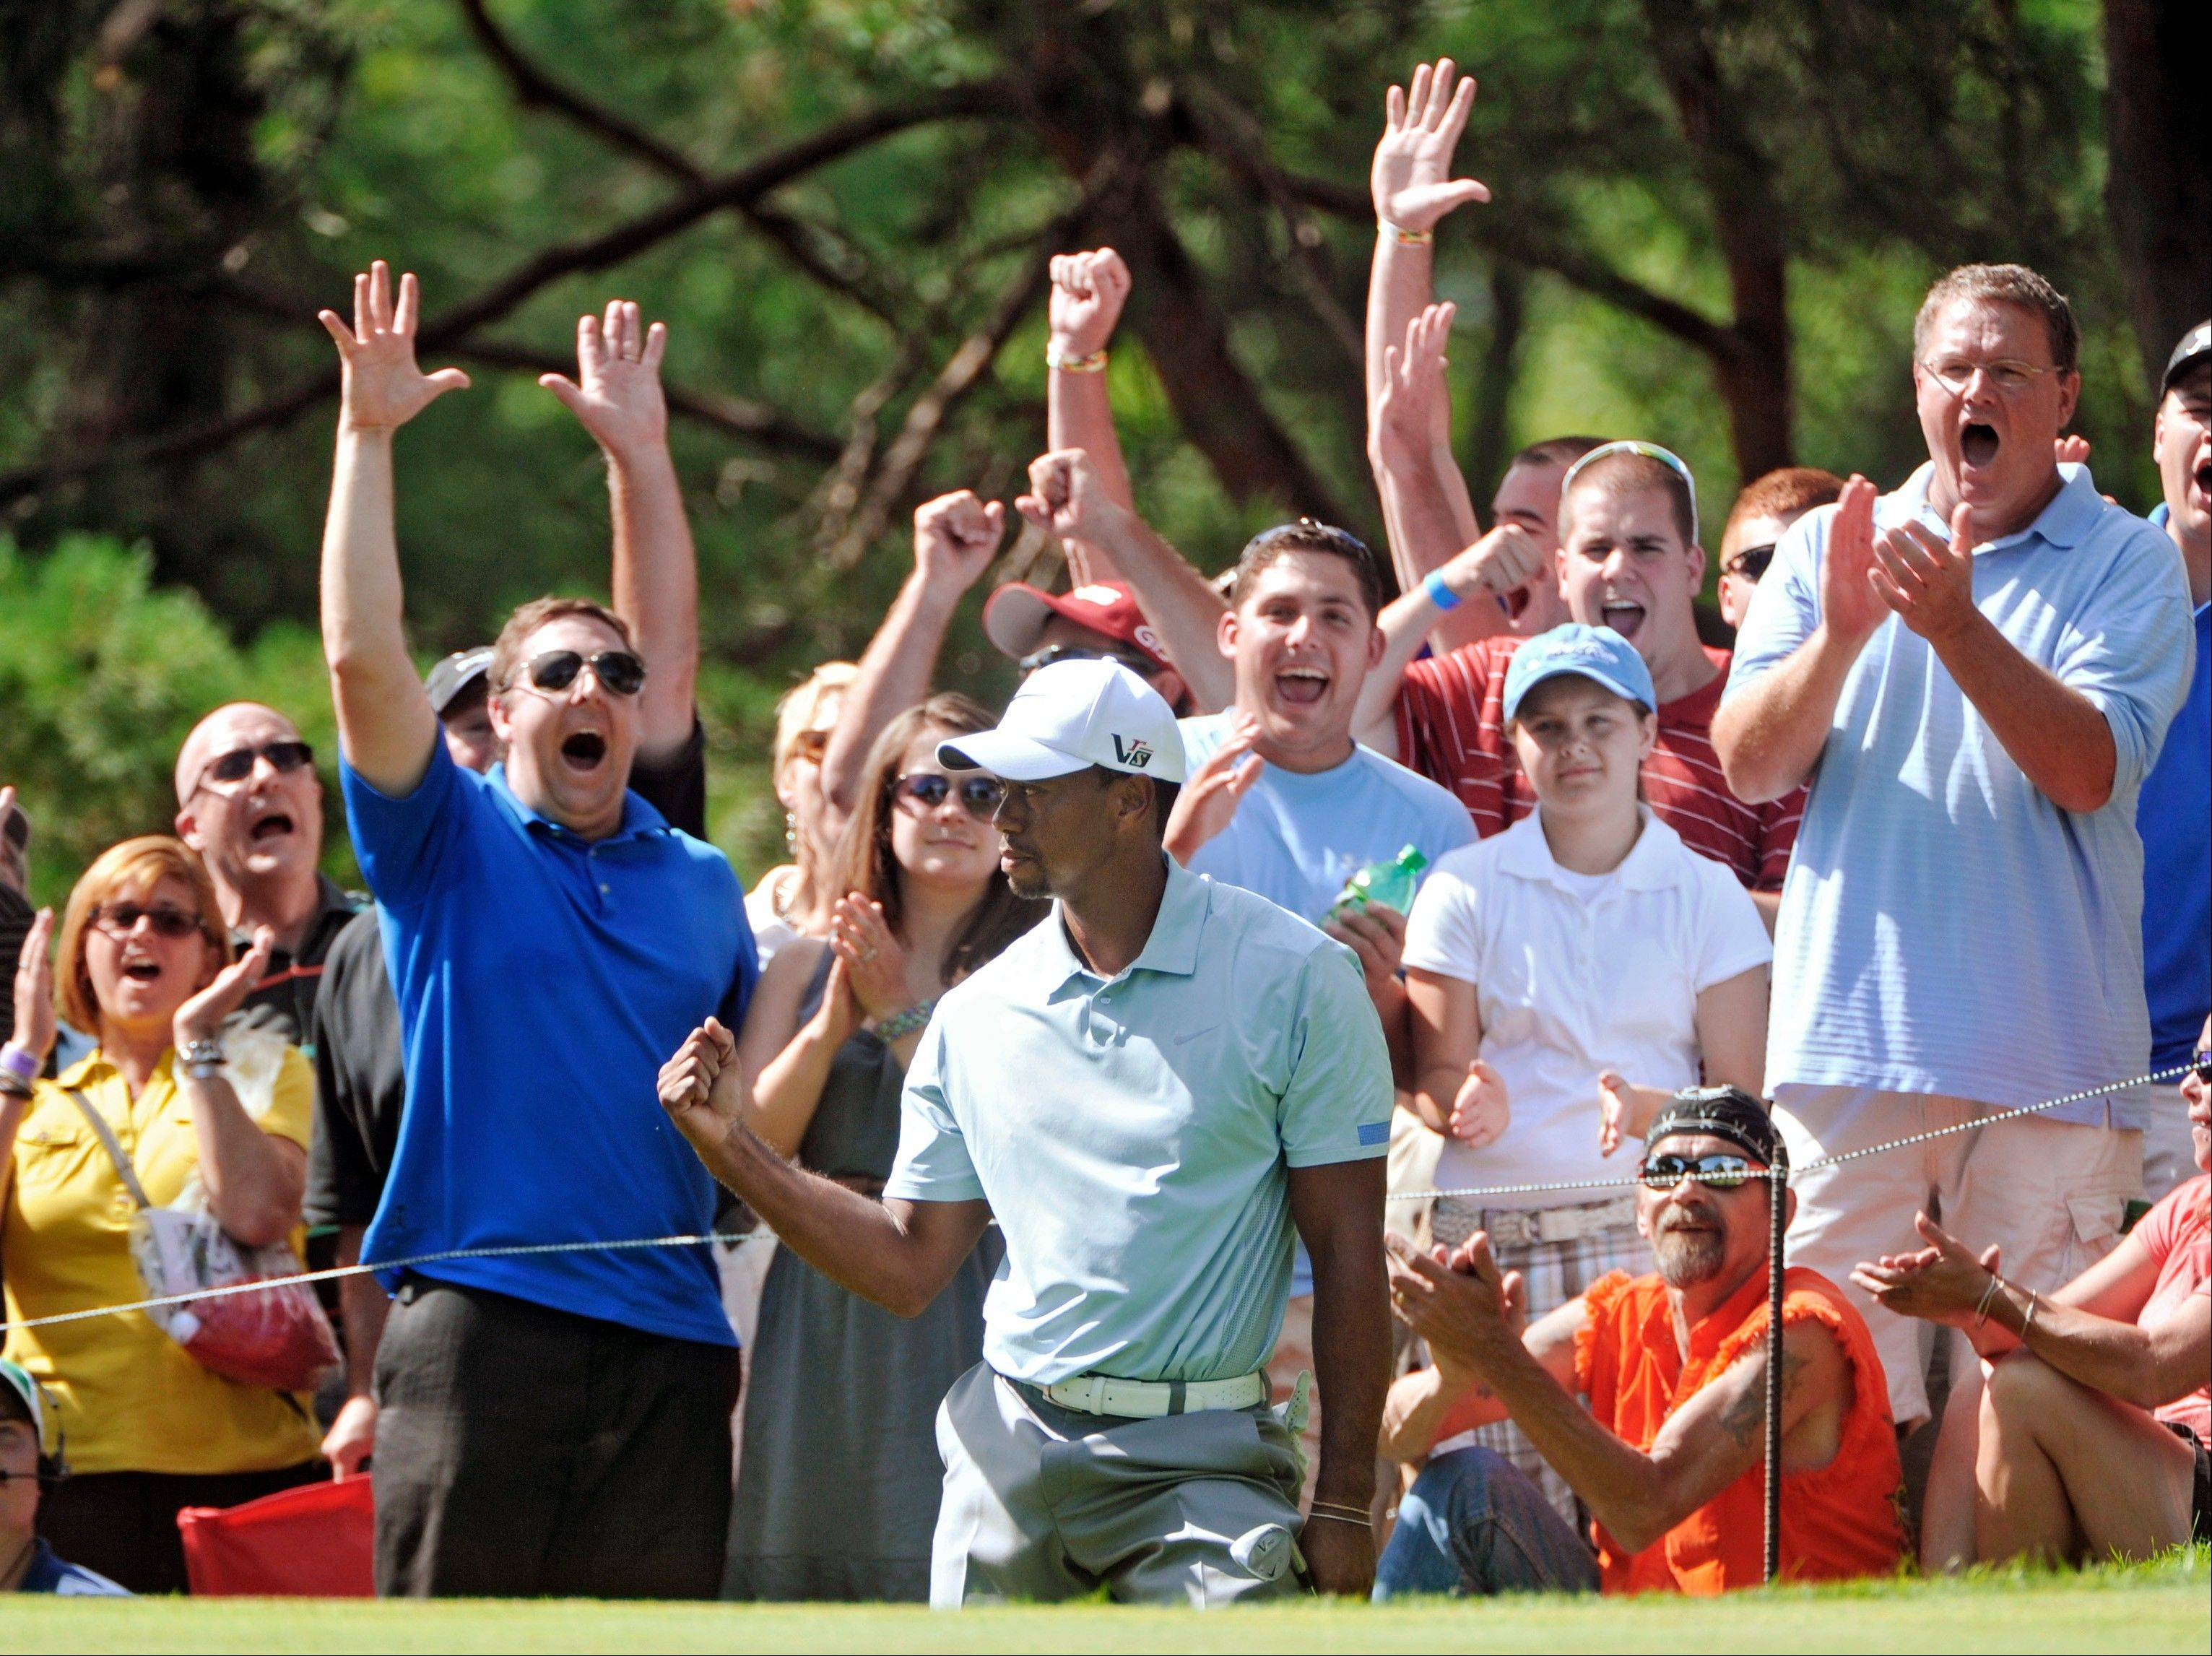 Fans celebrate with Tiger Woods, center, after Woods chipped in for birdie from off the 13th green during the third round of the Bridgestone Invitational golf tournament, Saturday, Aug. 3, 2013, at Firestone Country Club in Akron, Ohio. Woods leads the tournament by seven shots at 15-under par. (AP Photo/Phil Long)